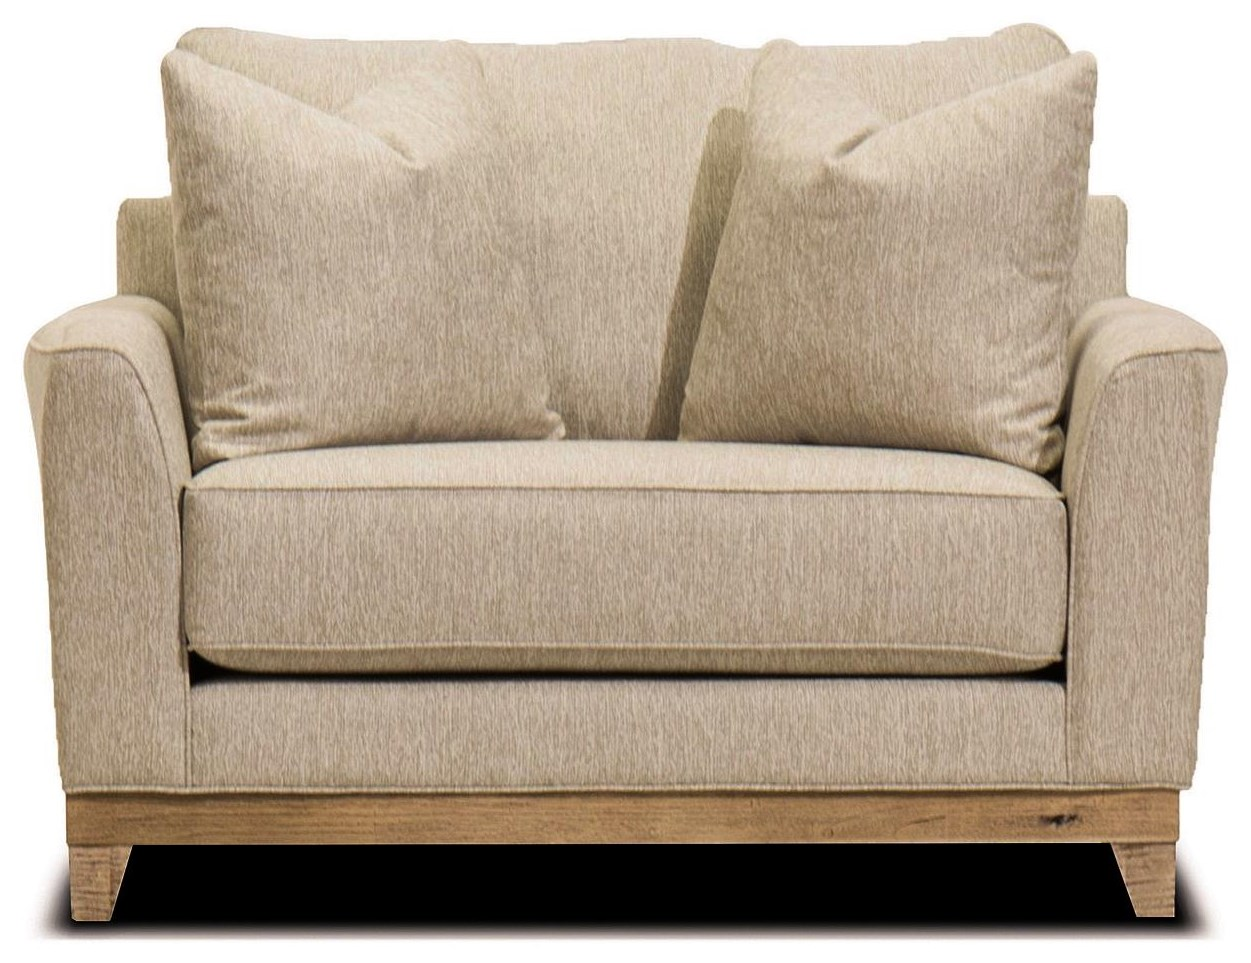 Brackley Whitman Mist Chair by Michael Nicholas at Beck's Furniture